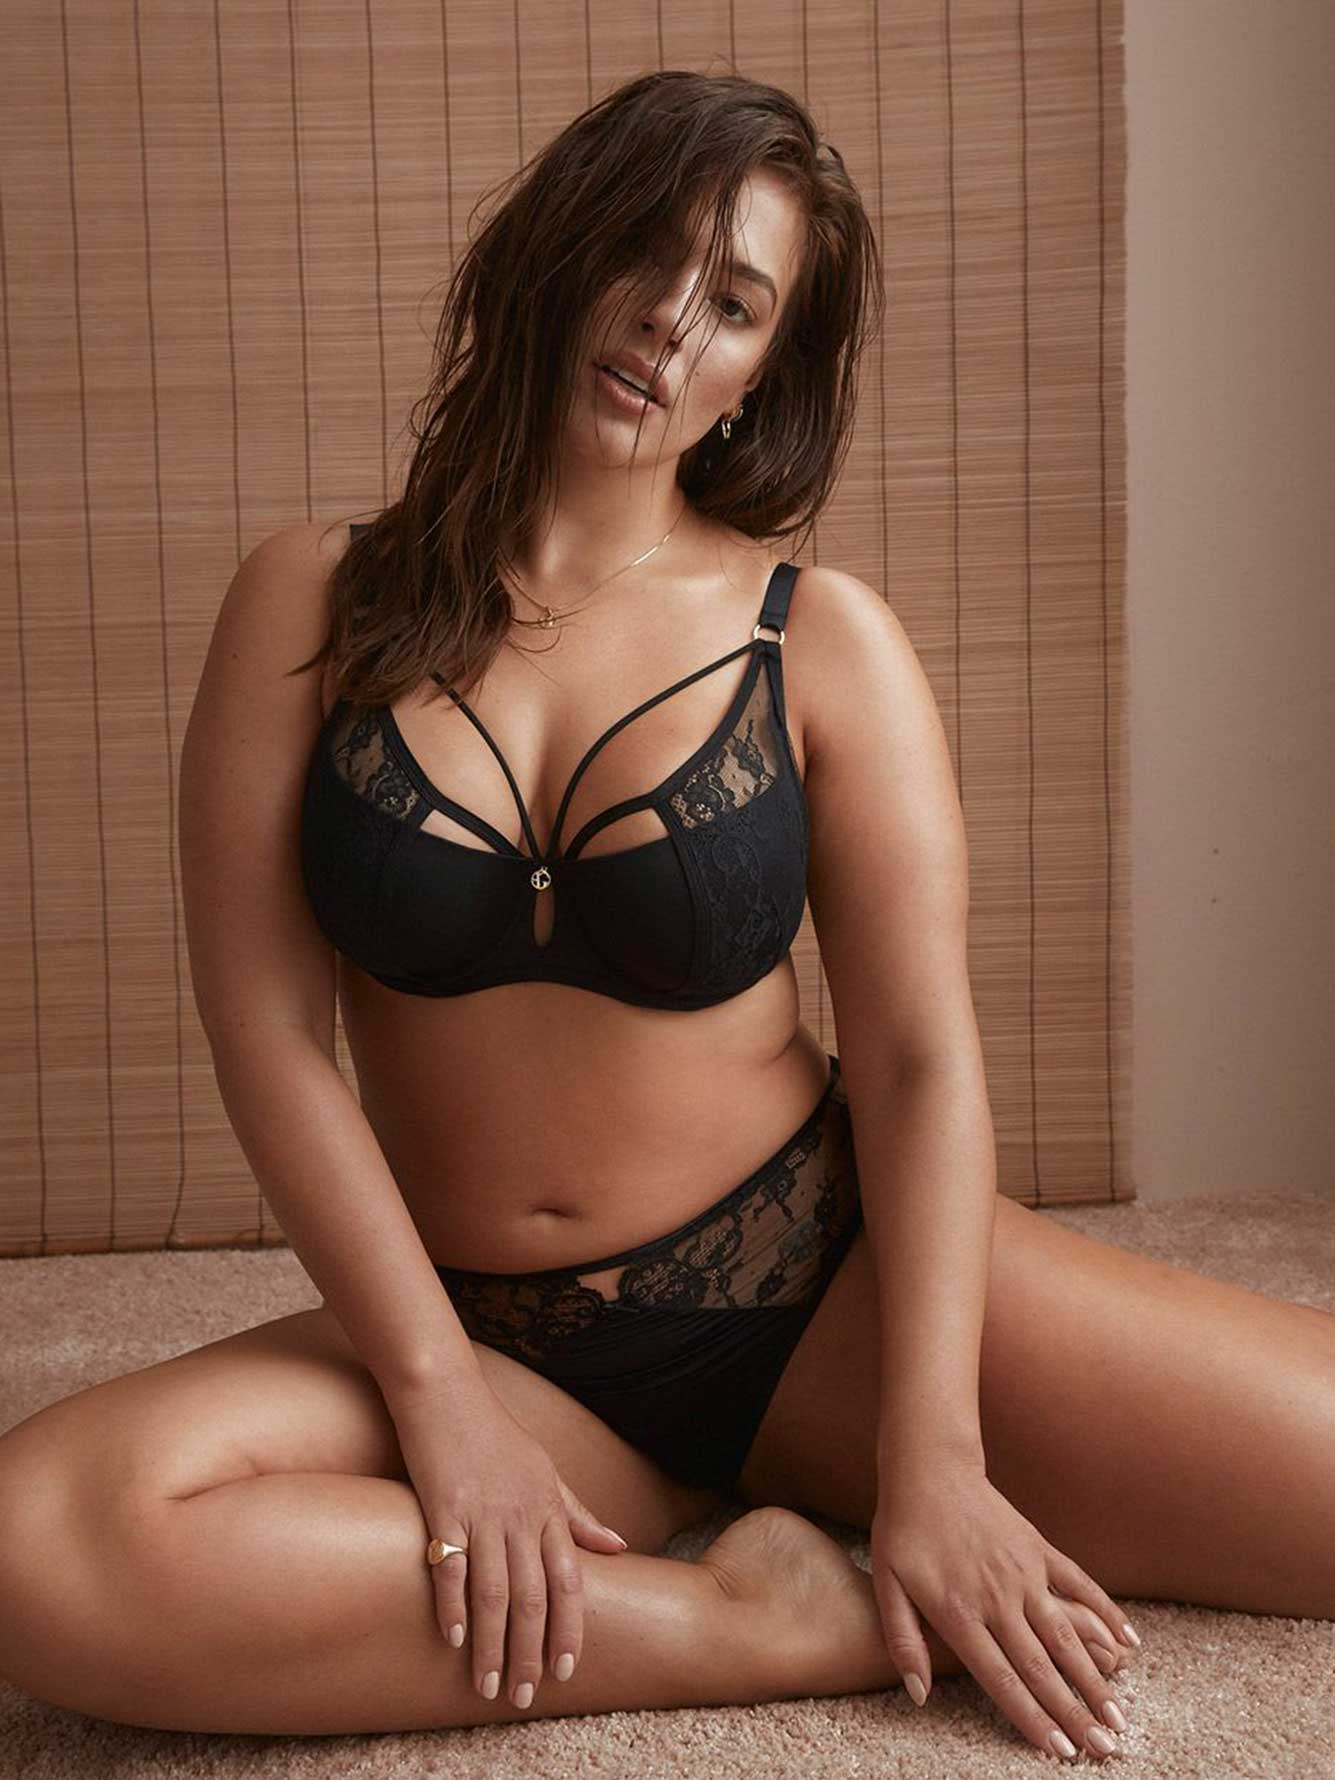 af0bdb80d3 Micro Jersey Demi Cup Diva Bra with Lace - Ashley Graham